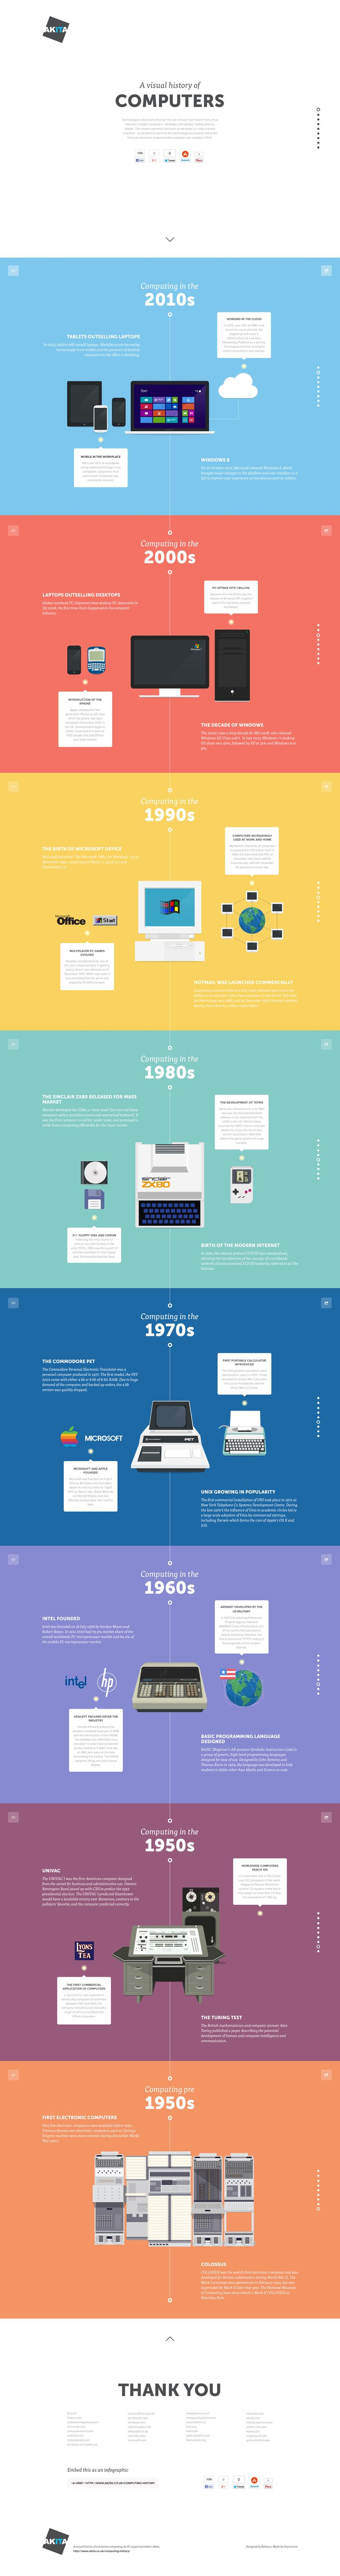 A Visual History of Computing #Responsive #ResponsiveDesign #Design #Website # Web #UI #GUI #UX #WebDesign